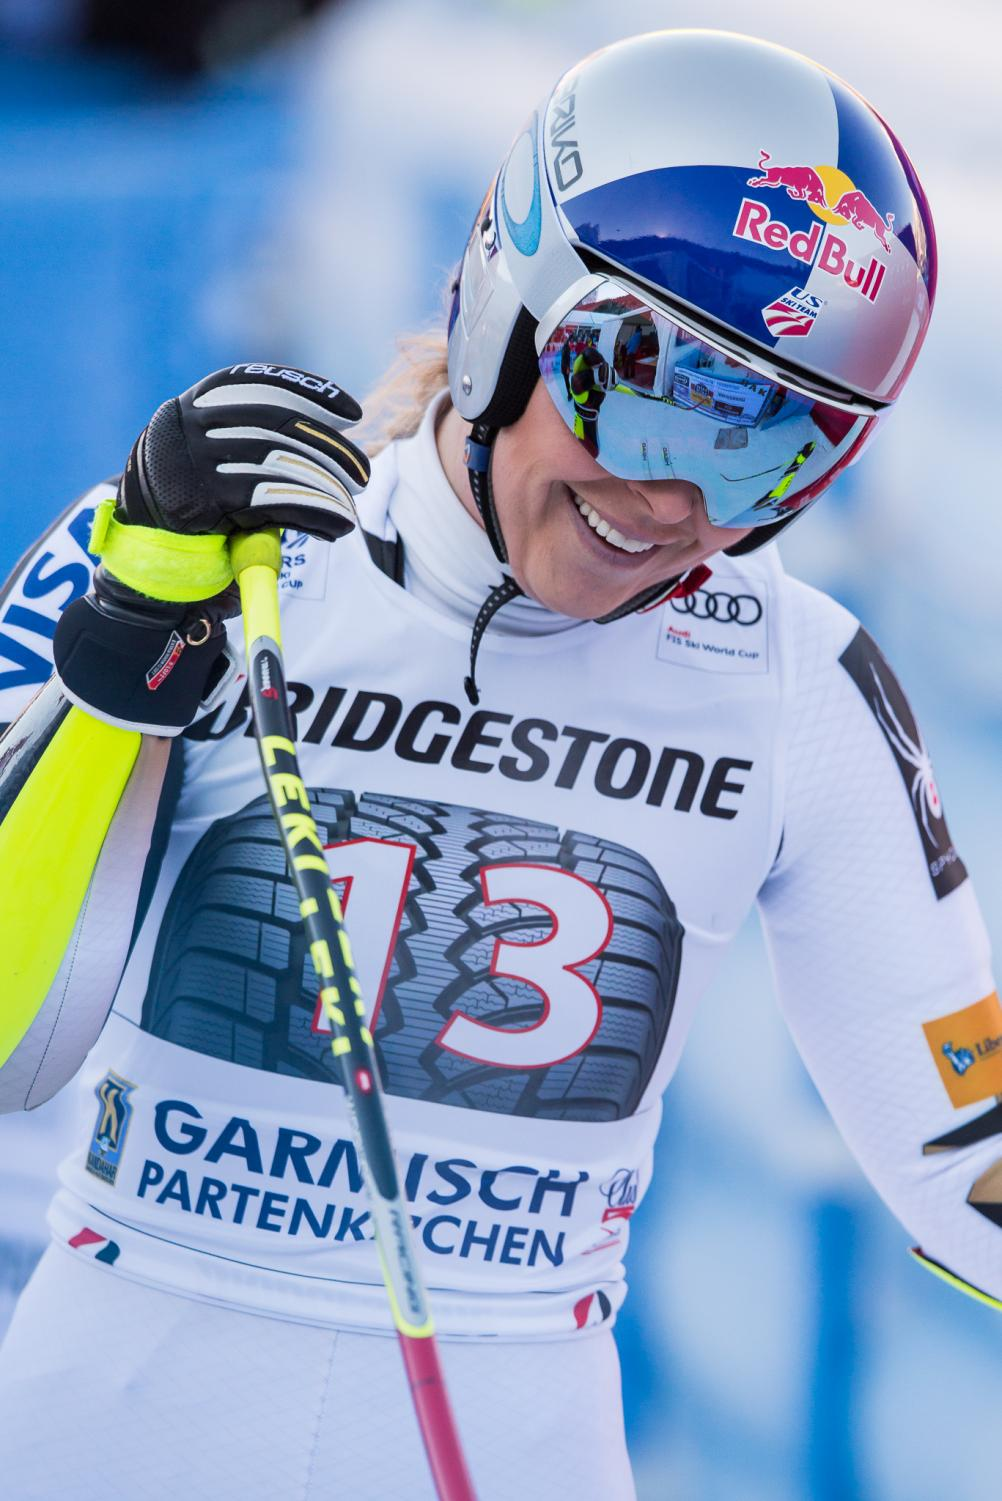 Lindsey Vonn is said to be the most award-winning female skier of all-time, so why do people care if she is smiling in a photo?